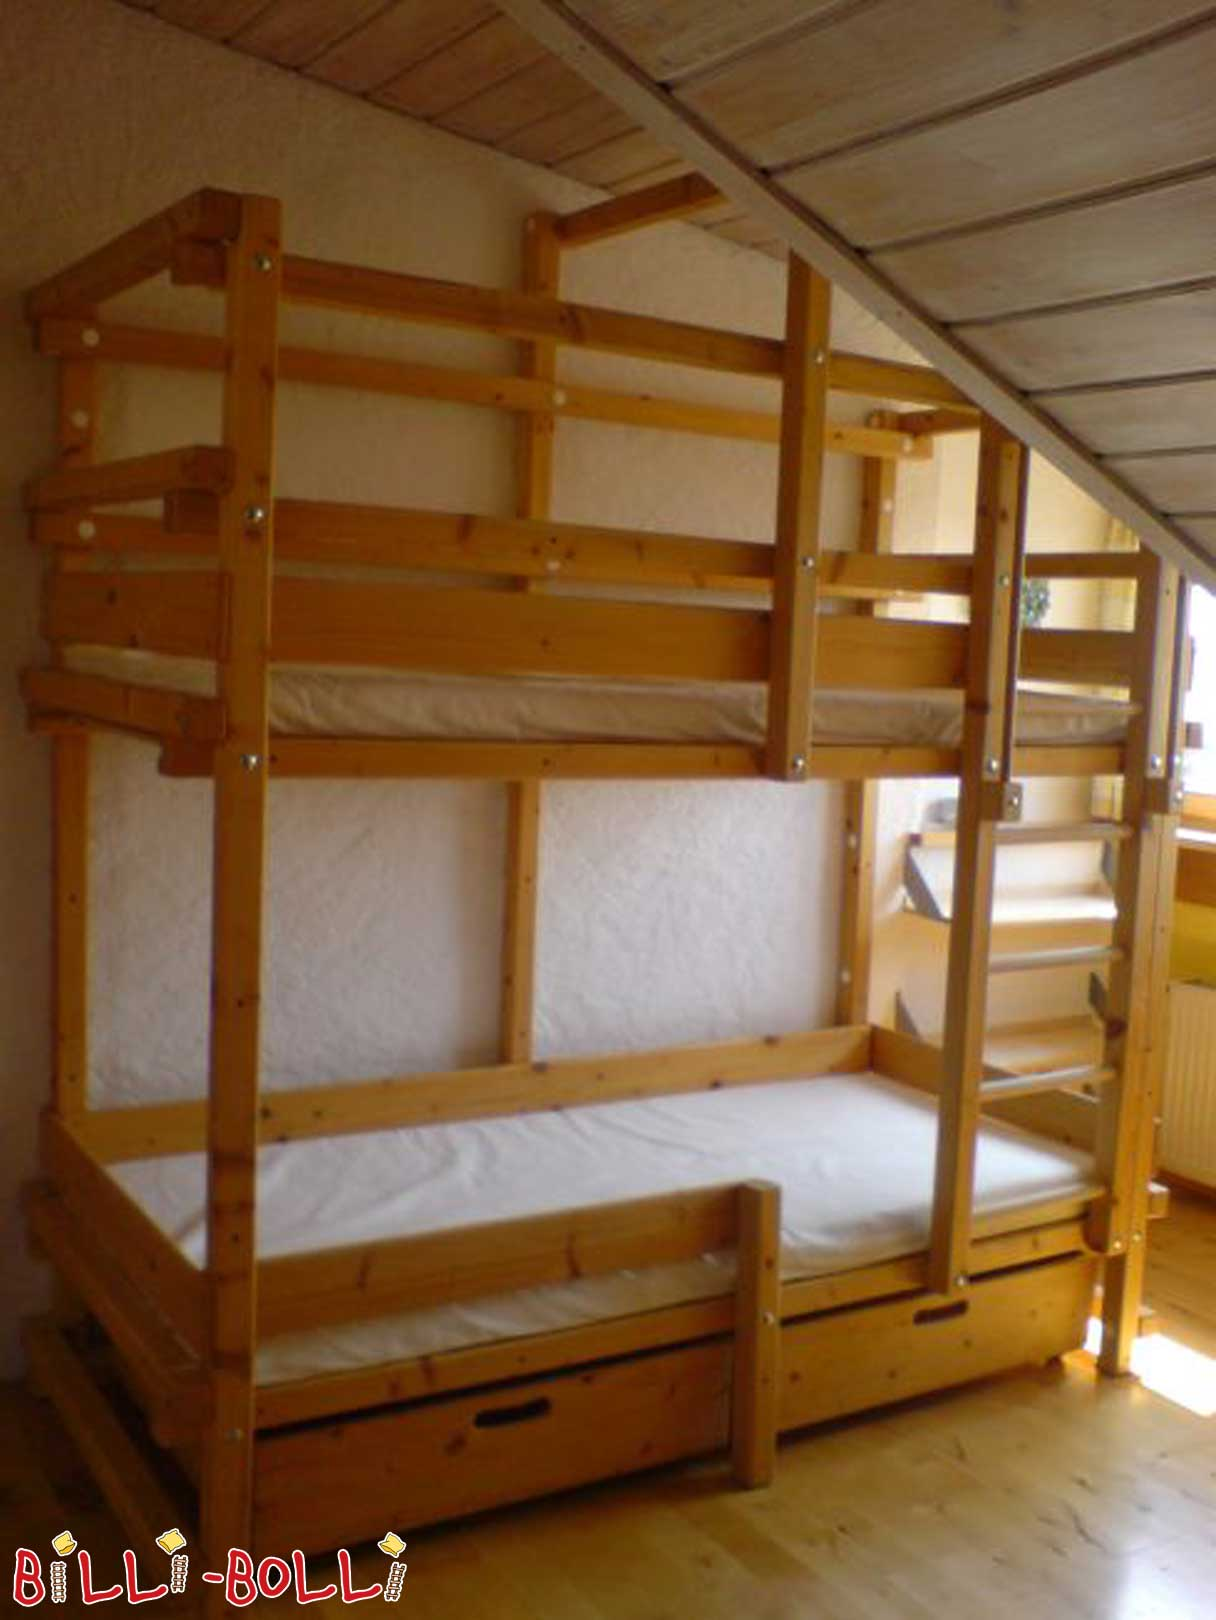 Billi-Bolli Adventure Bed (second hand bunk bed)